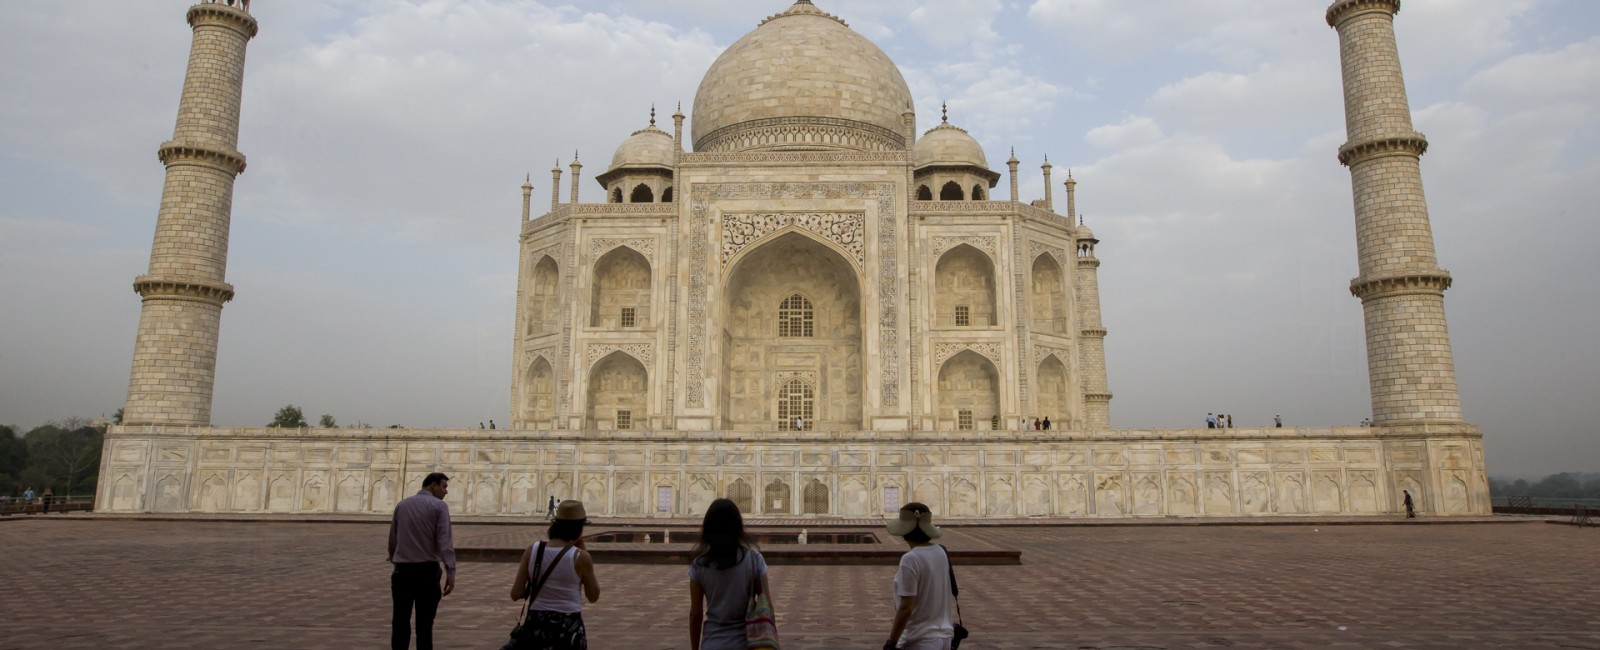 Permalink to The Tiger Safari: Day 8 with Agra extension